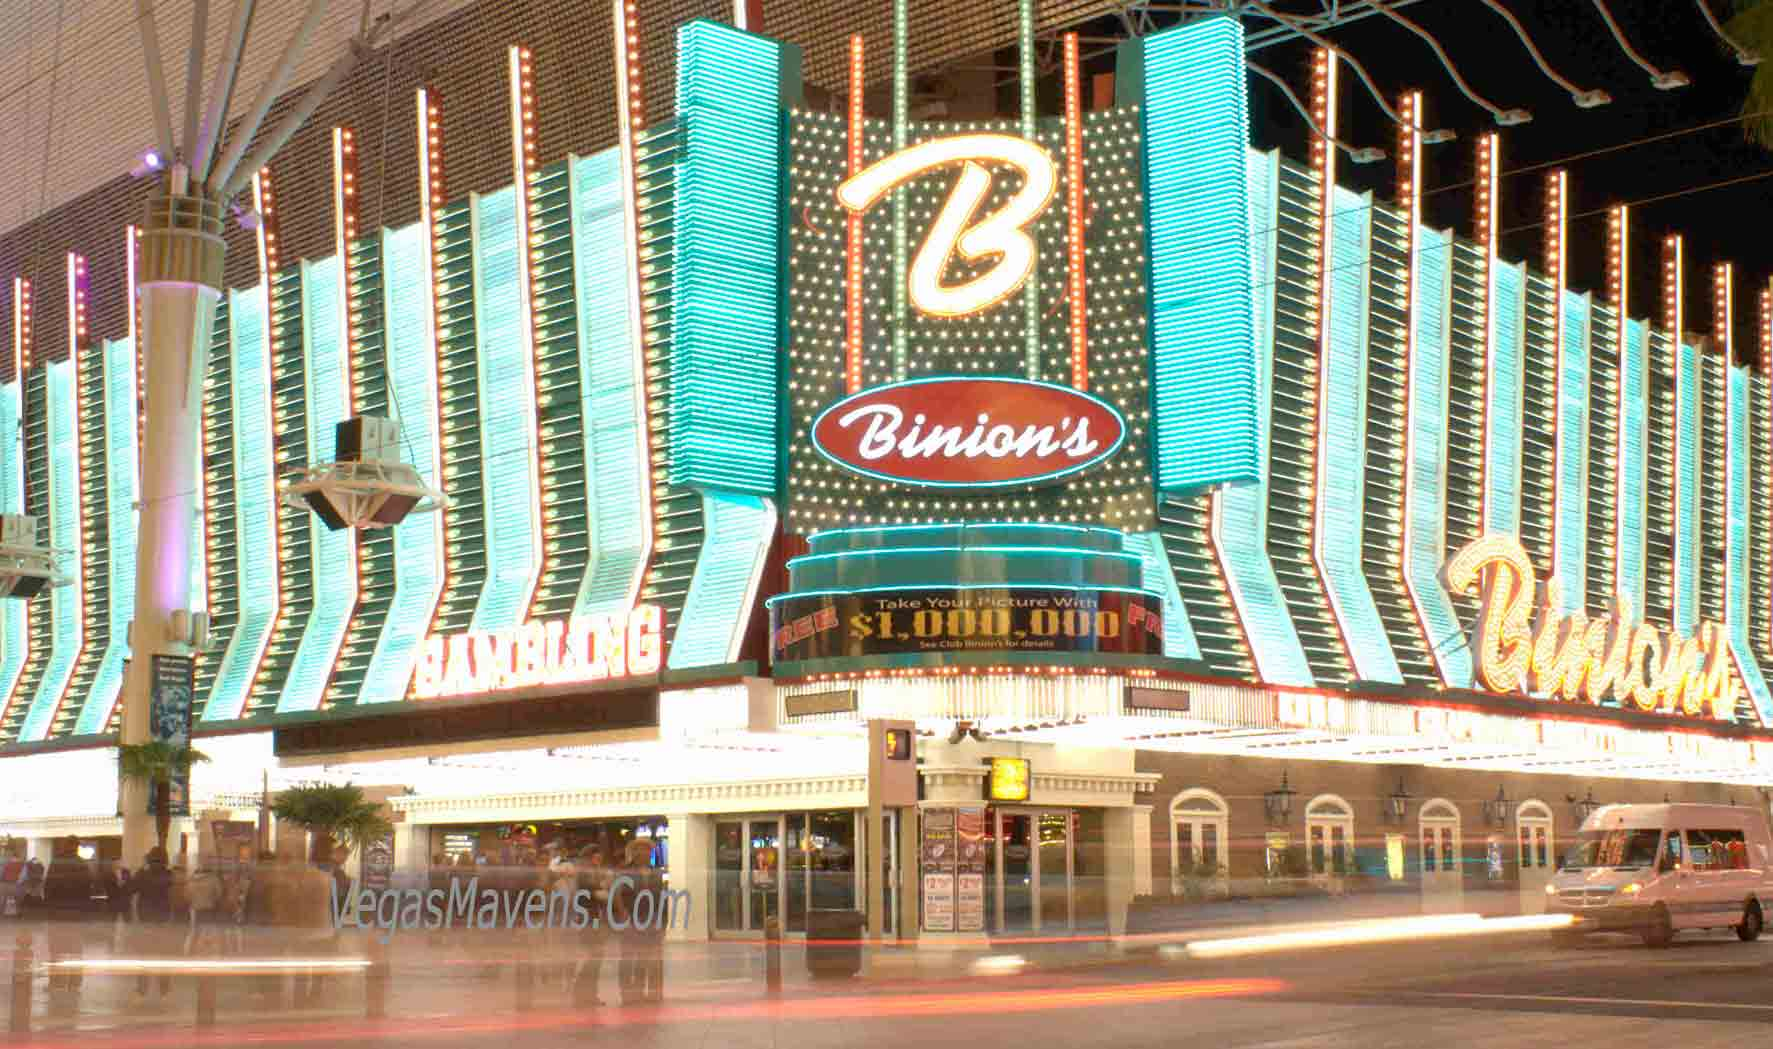 Pokeren in Las Vegas: Binion's Horseshoe